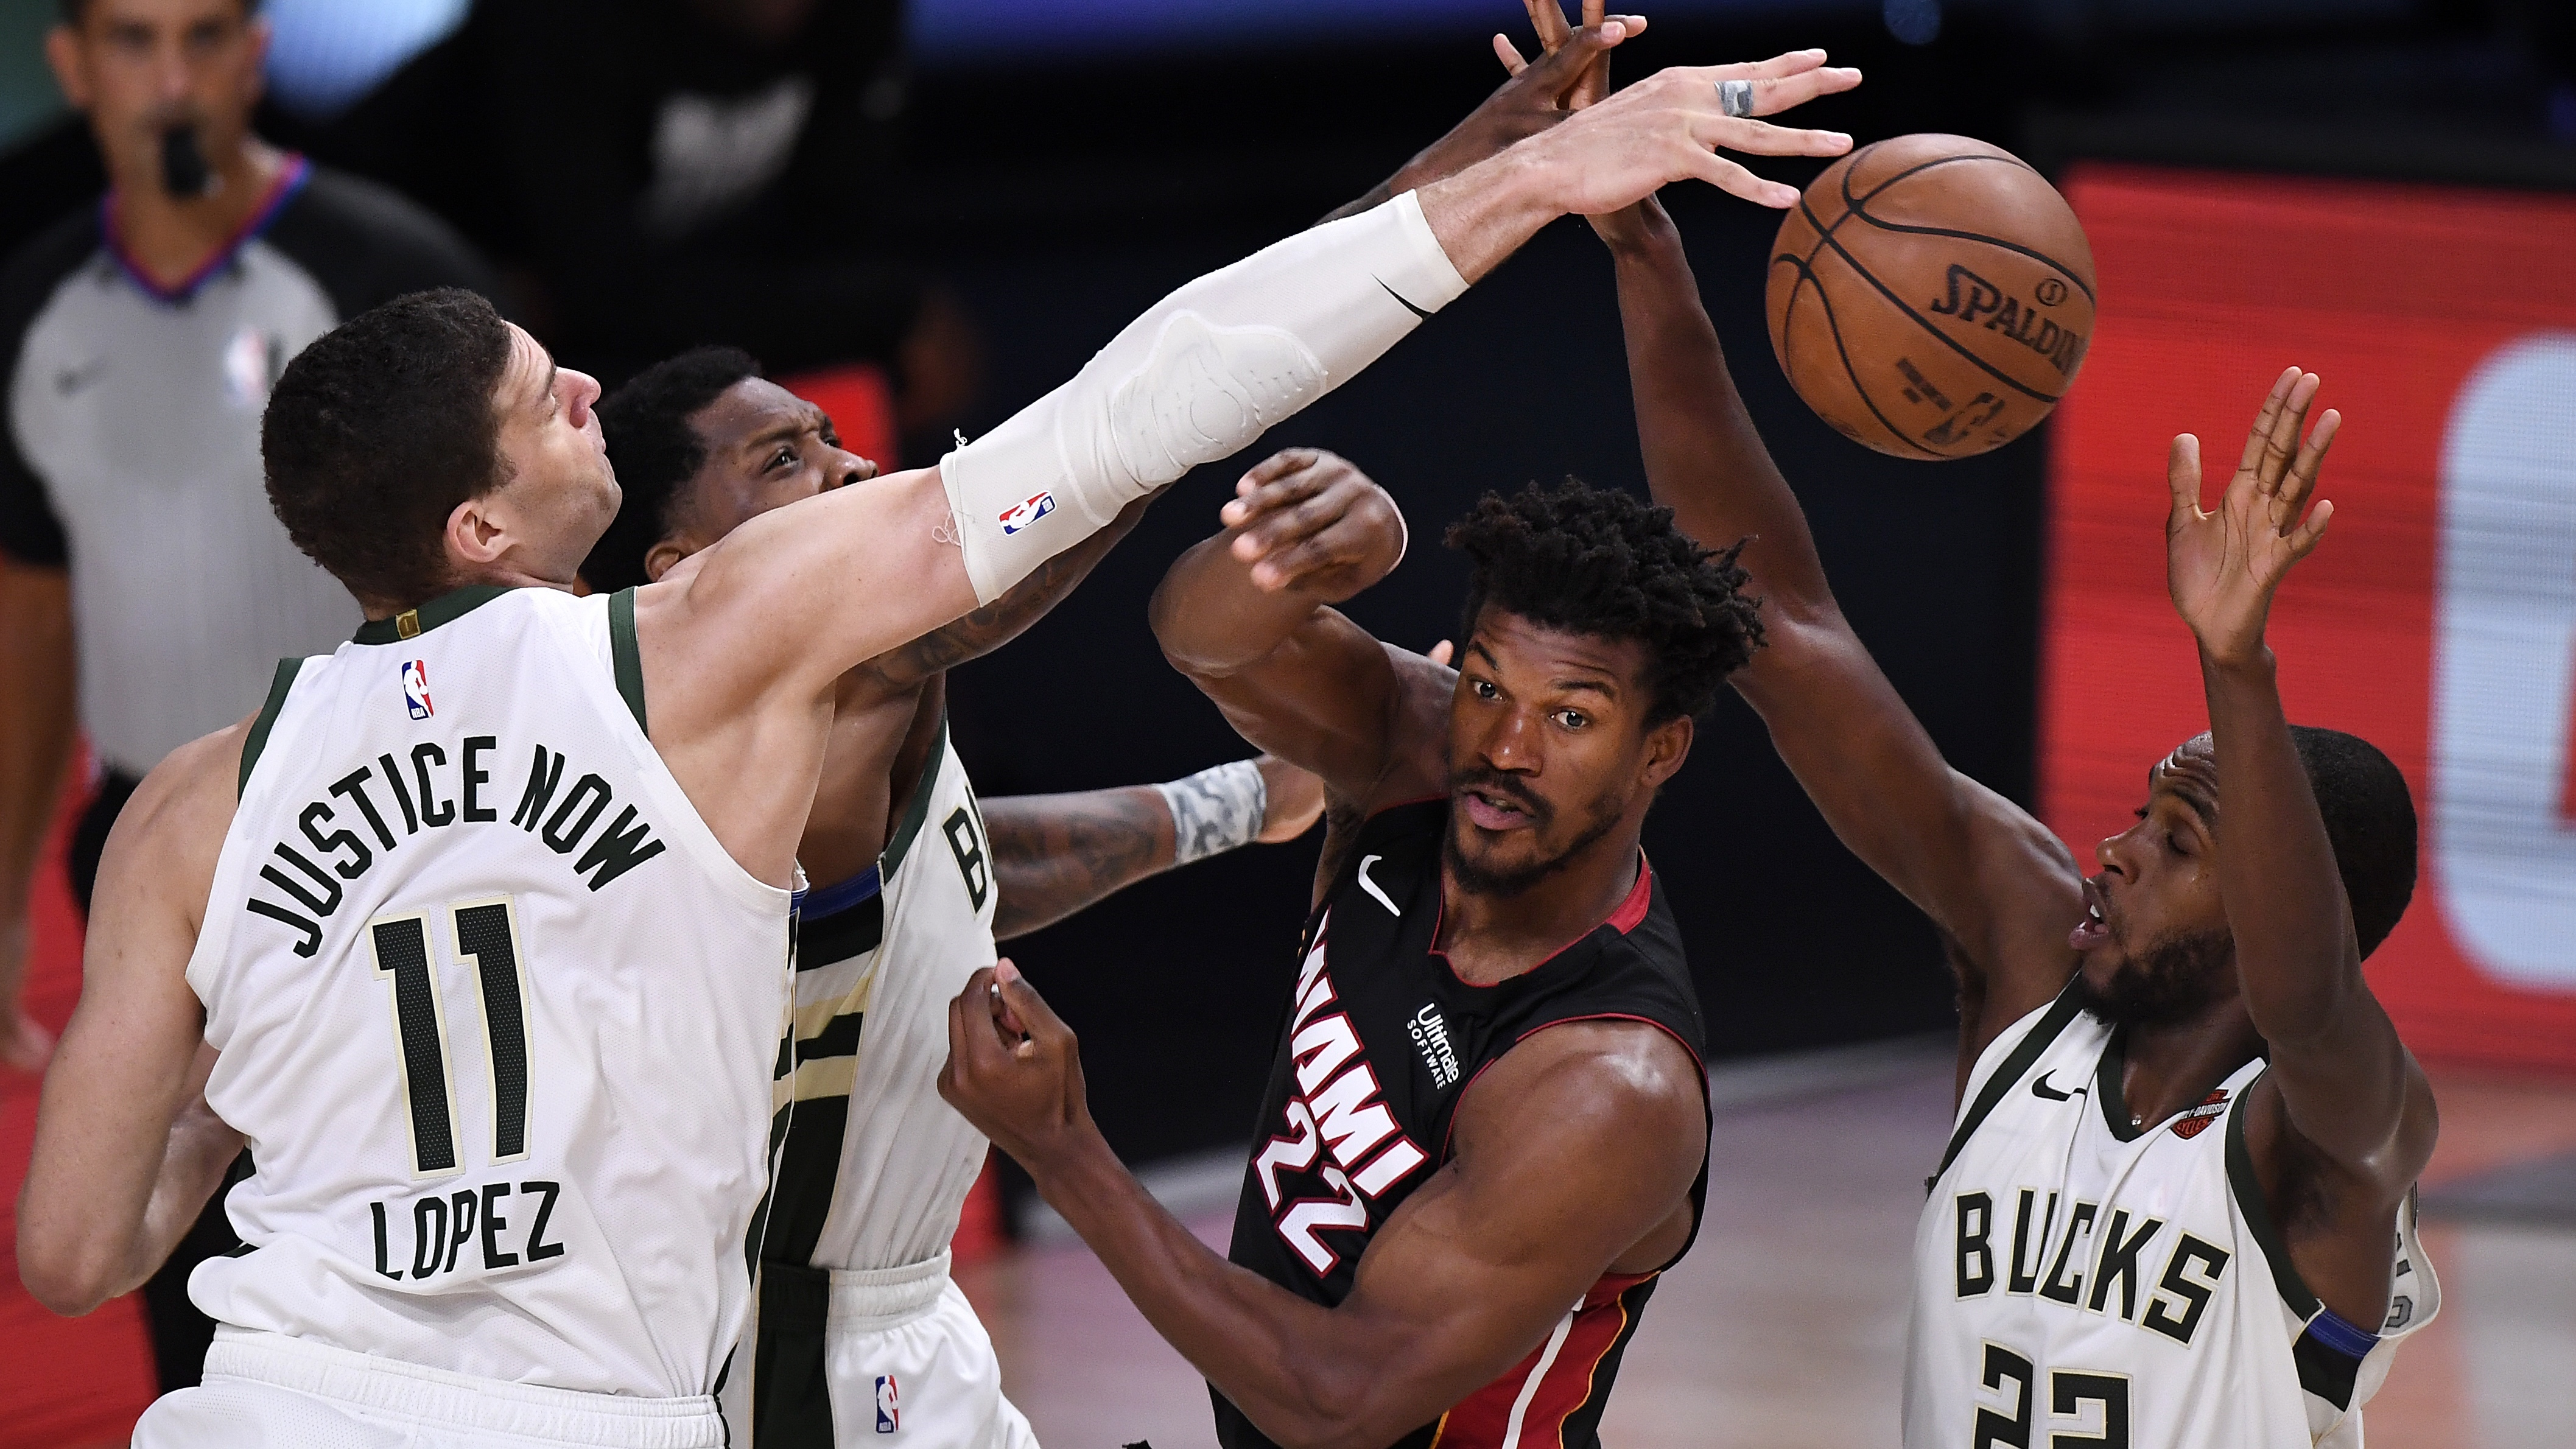 Bucks Vs Heat Live Stream How To Watch Game 5 Of The Nba Playoffs Online Tom S Guide